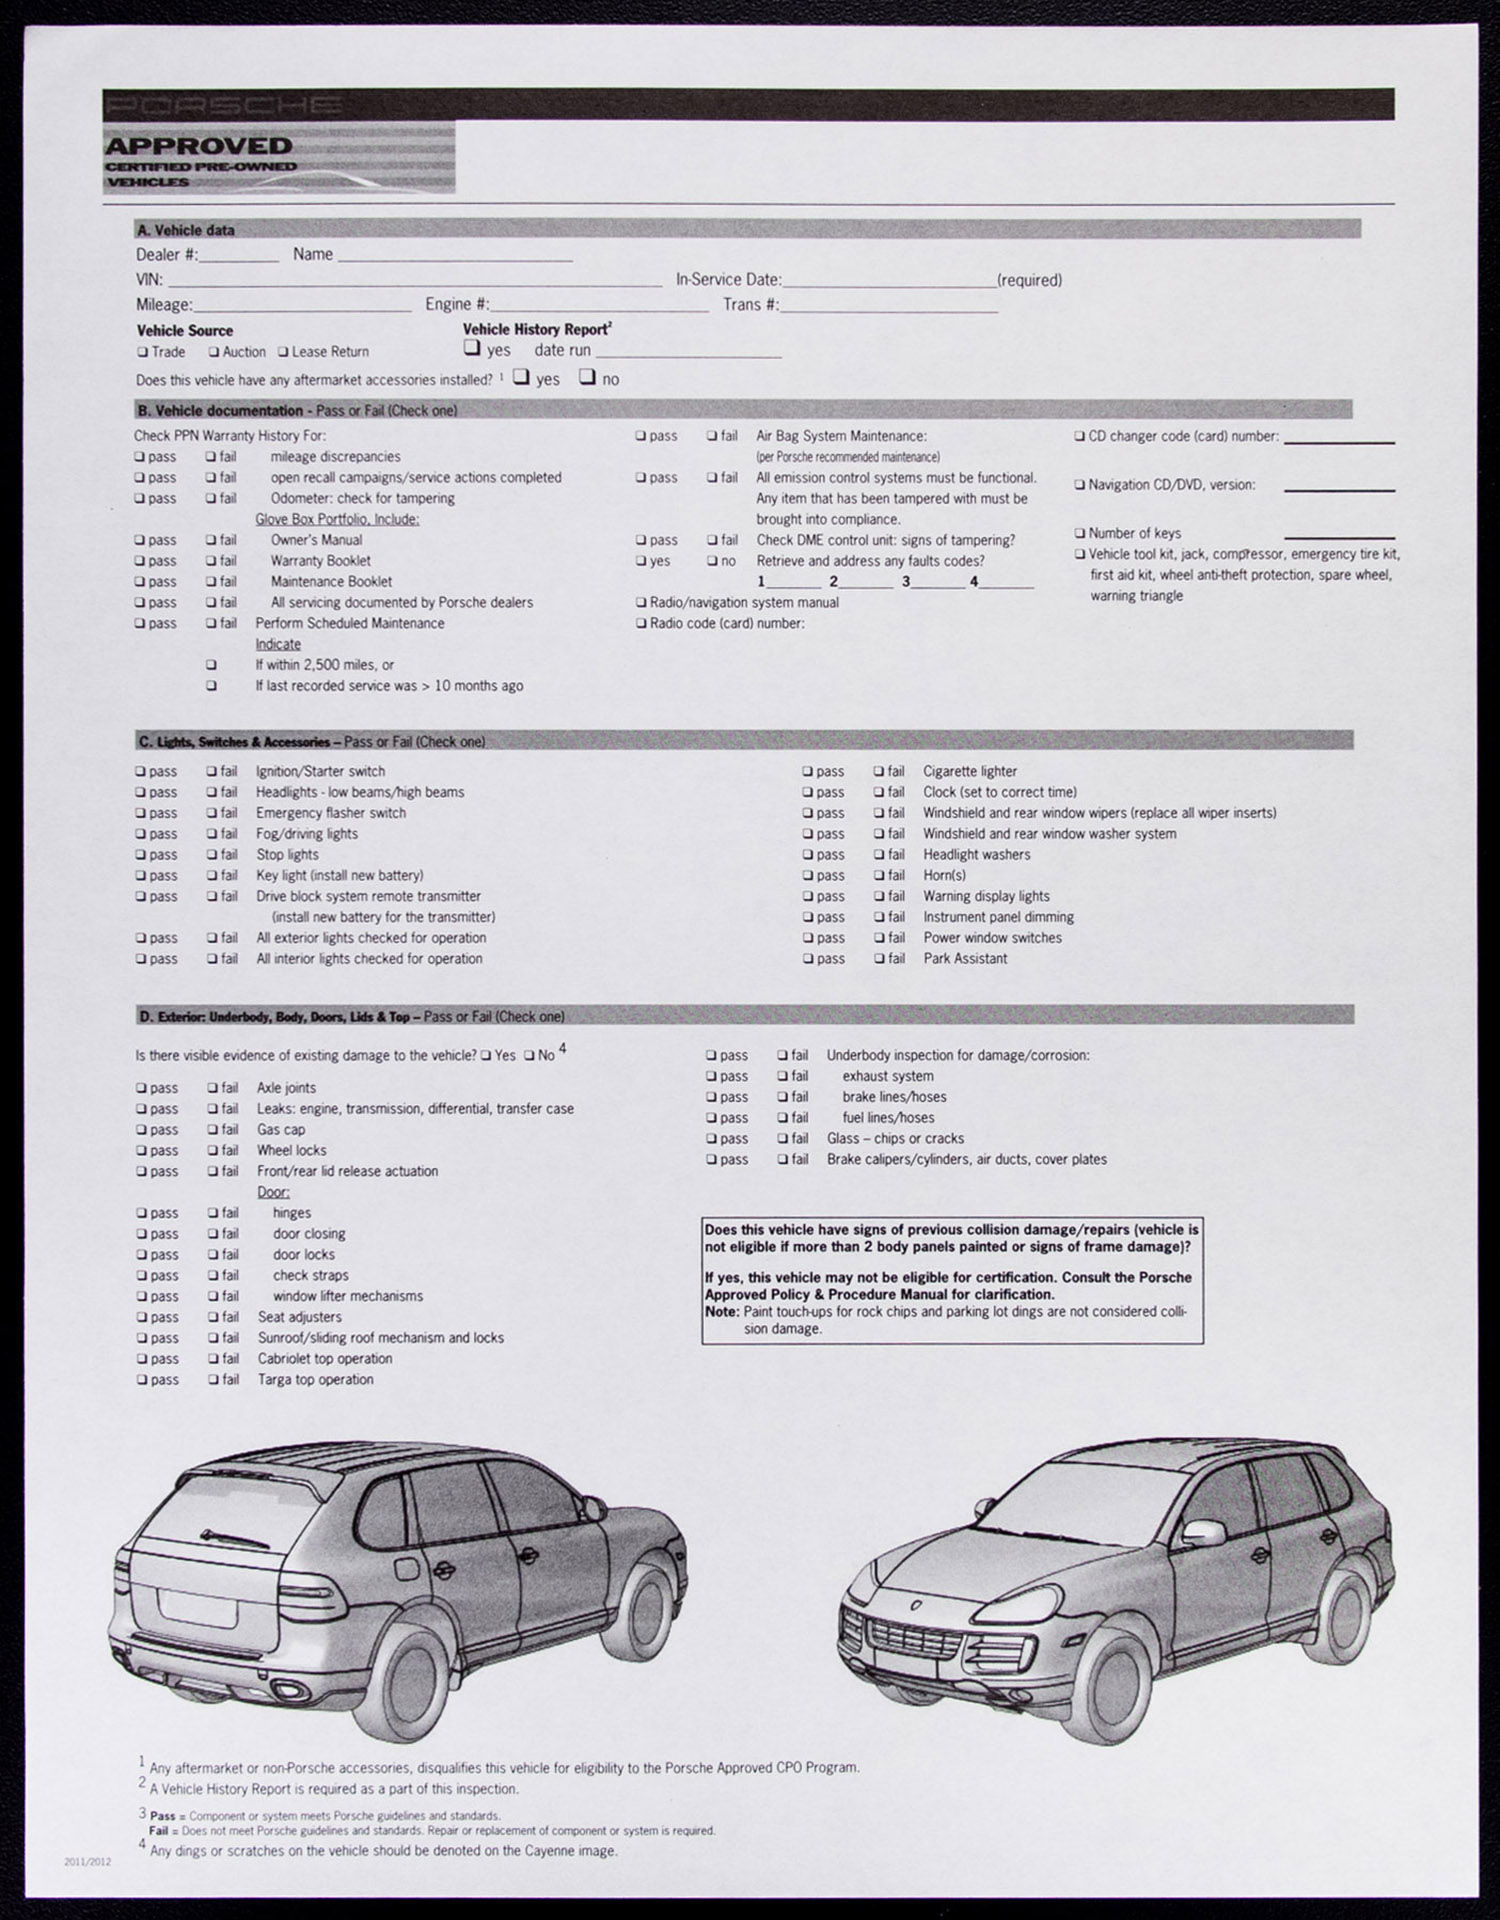 used vehicle inspection checklist pdf